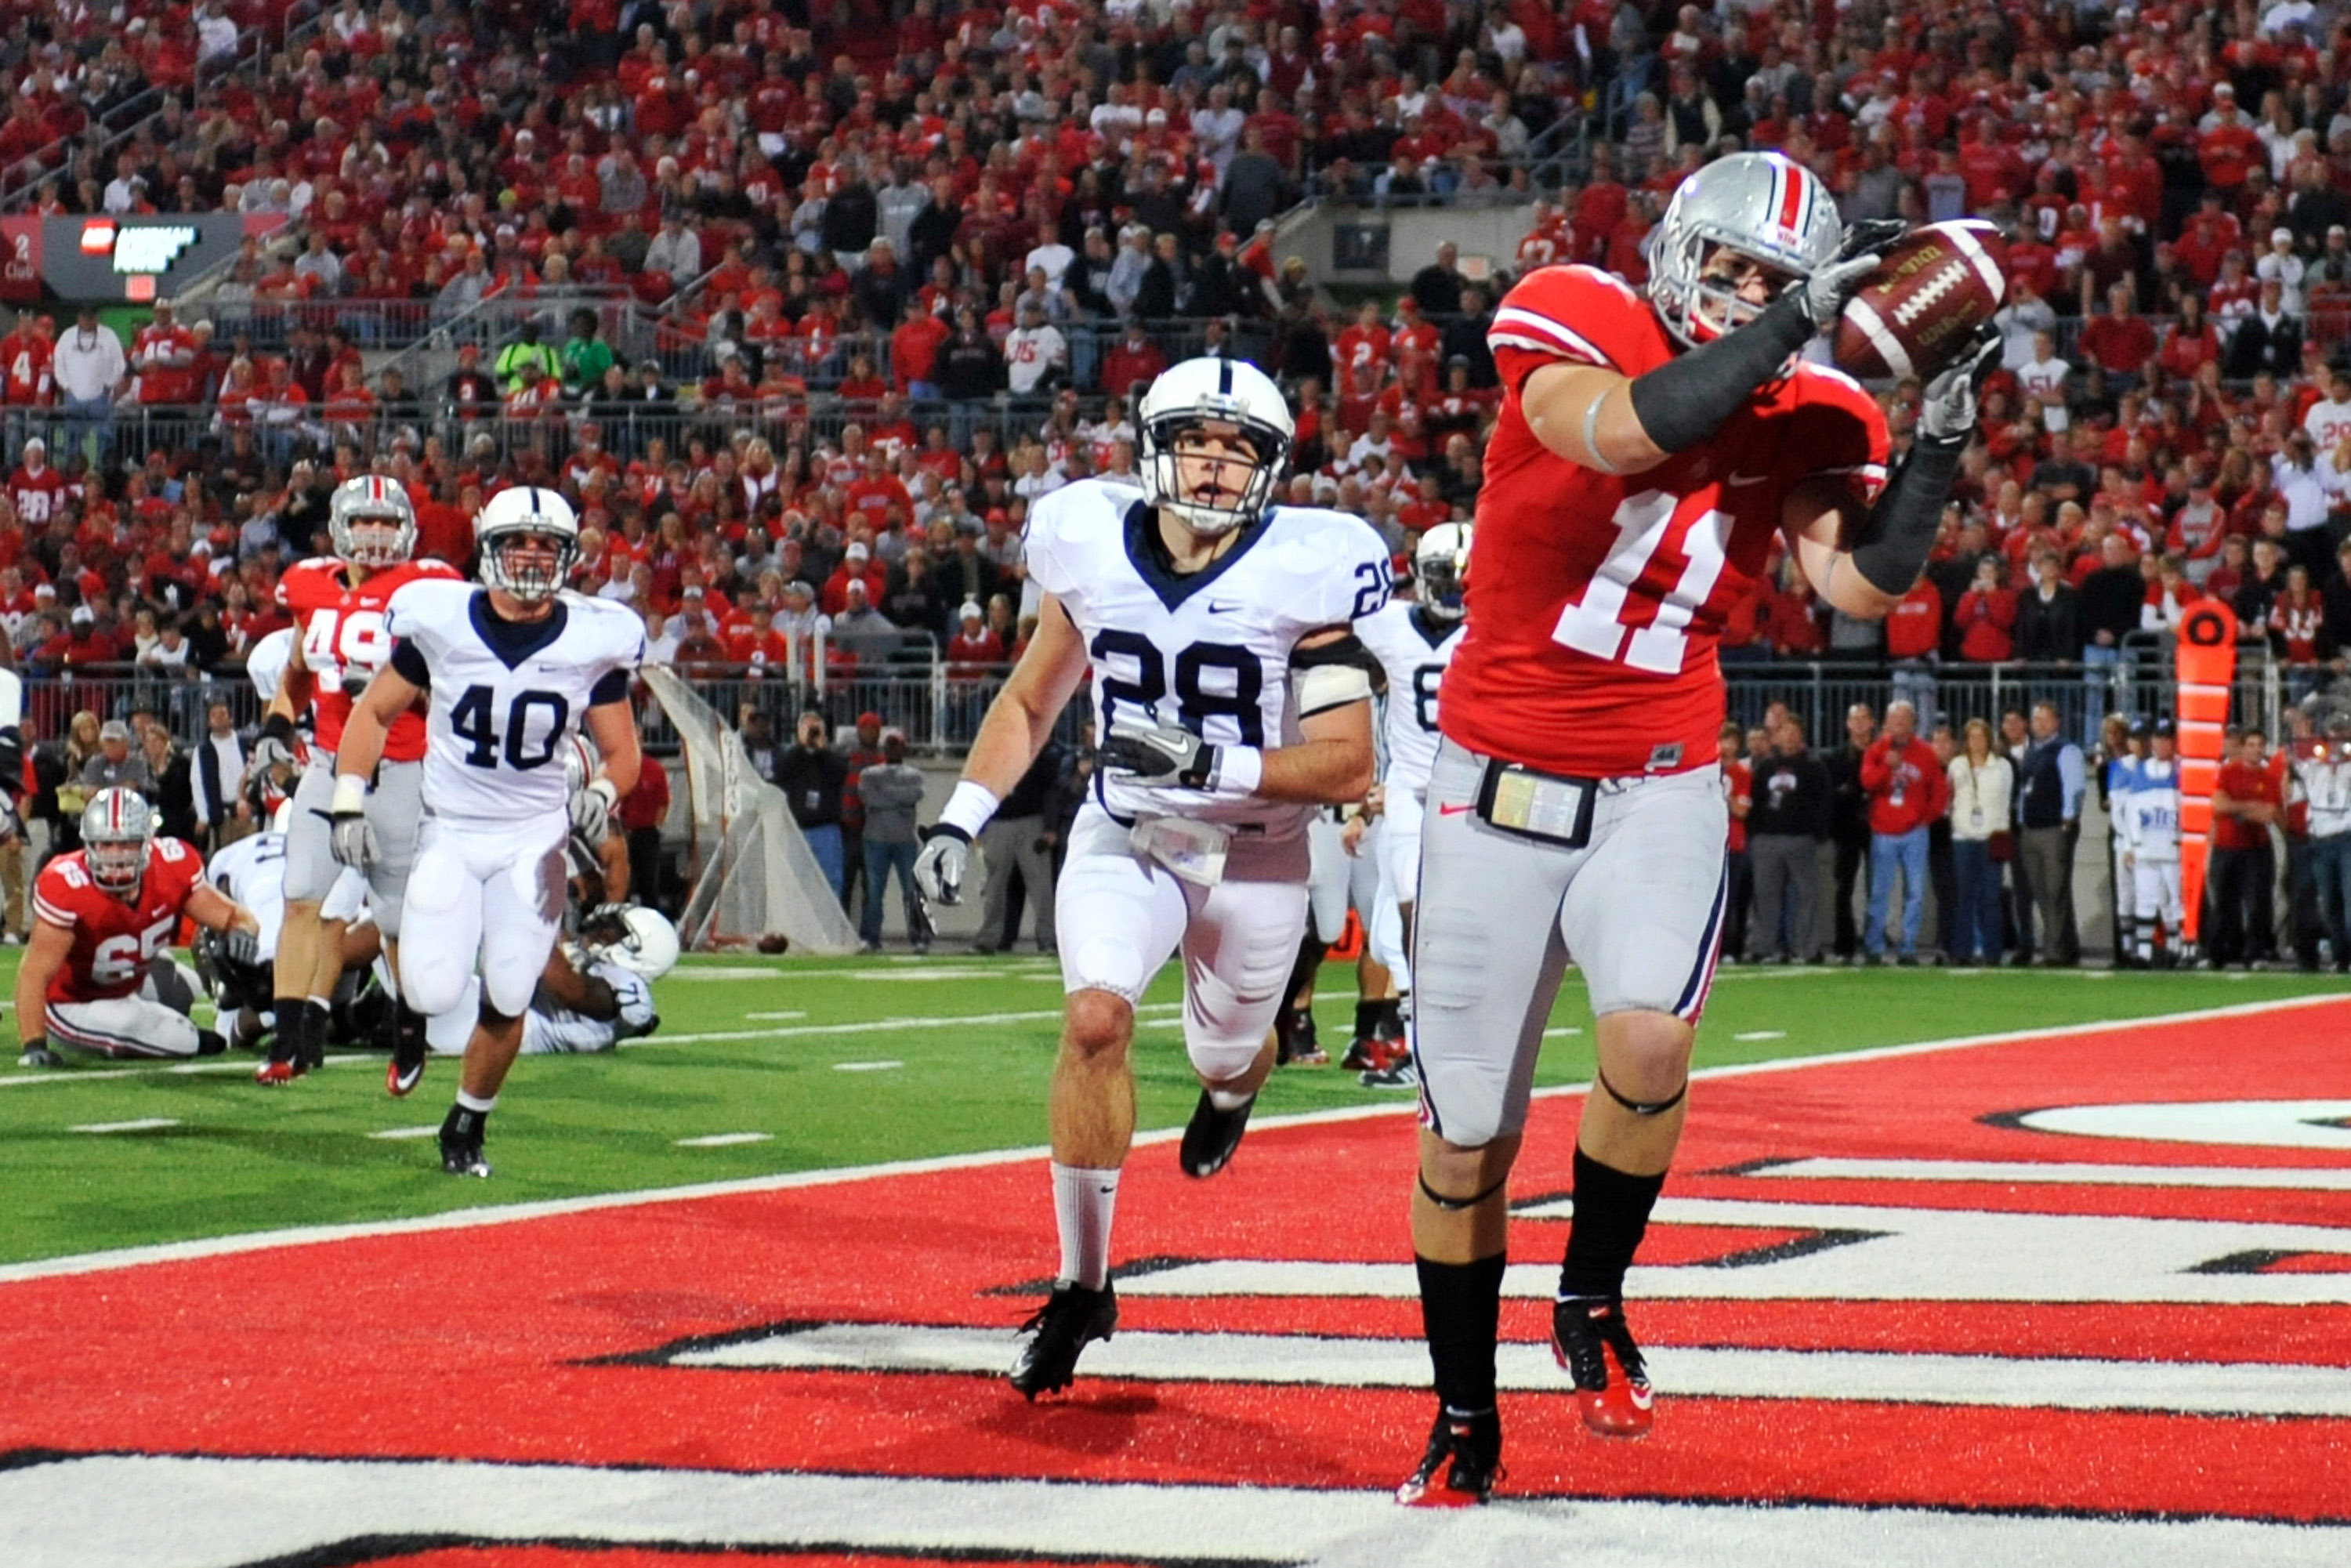 COLUMBUS, OH - NOVEMBER 13:  Jake Stoneburner #11 of the Ohio State Buckeyes makes a three yard touchdown reception in front of Drew Astorino #28 of the Penn State Nittany Lions at Ohio Stadium on November 13, 2010 in Columbus, Ohio. Ohio State defeated P